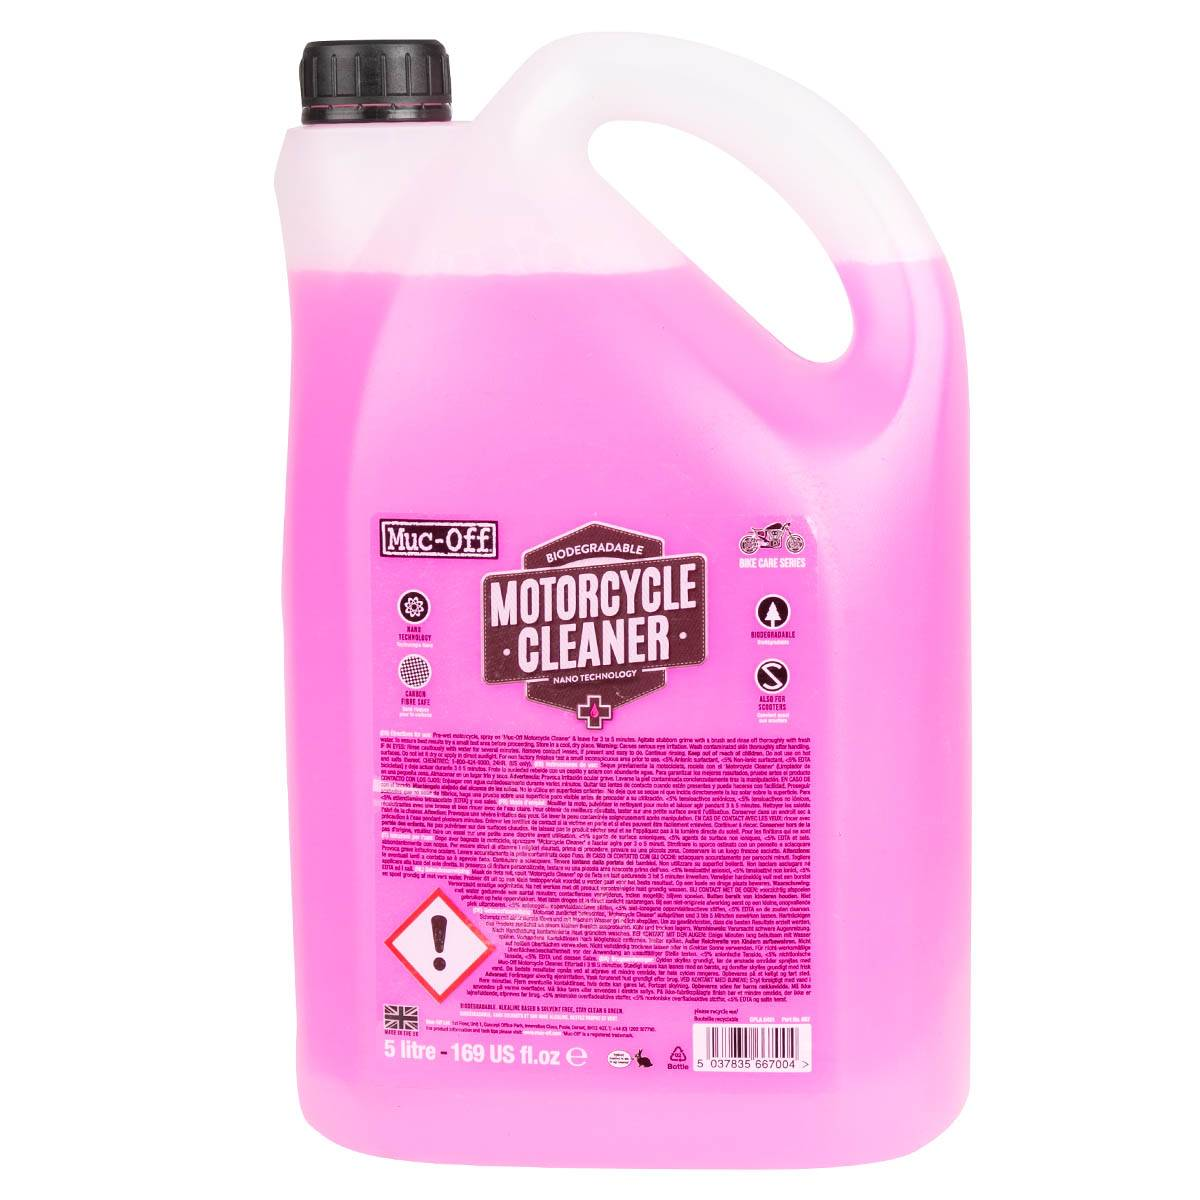 Muc-Off Nettoyant Moto Bike Cleaner - 5 Litre - Rose